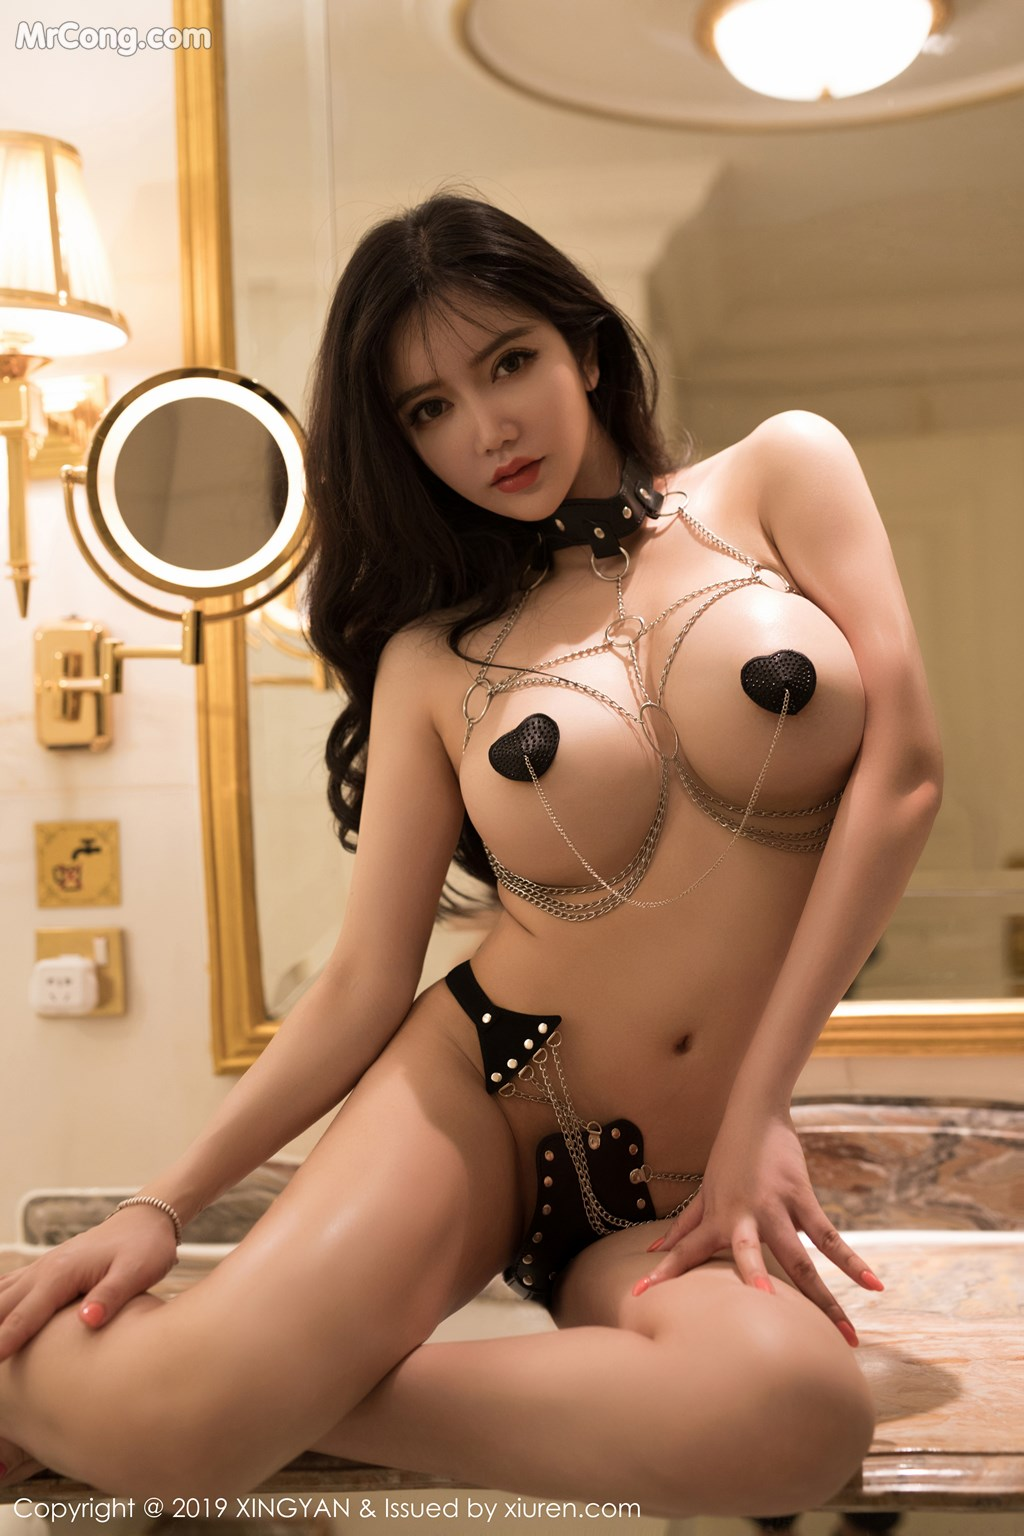 Image XingYan-Vol.122-MrCong.com-031 in post XingYan Vol.122: 心妍小公主 (47 ảnh)